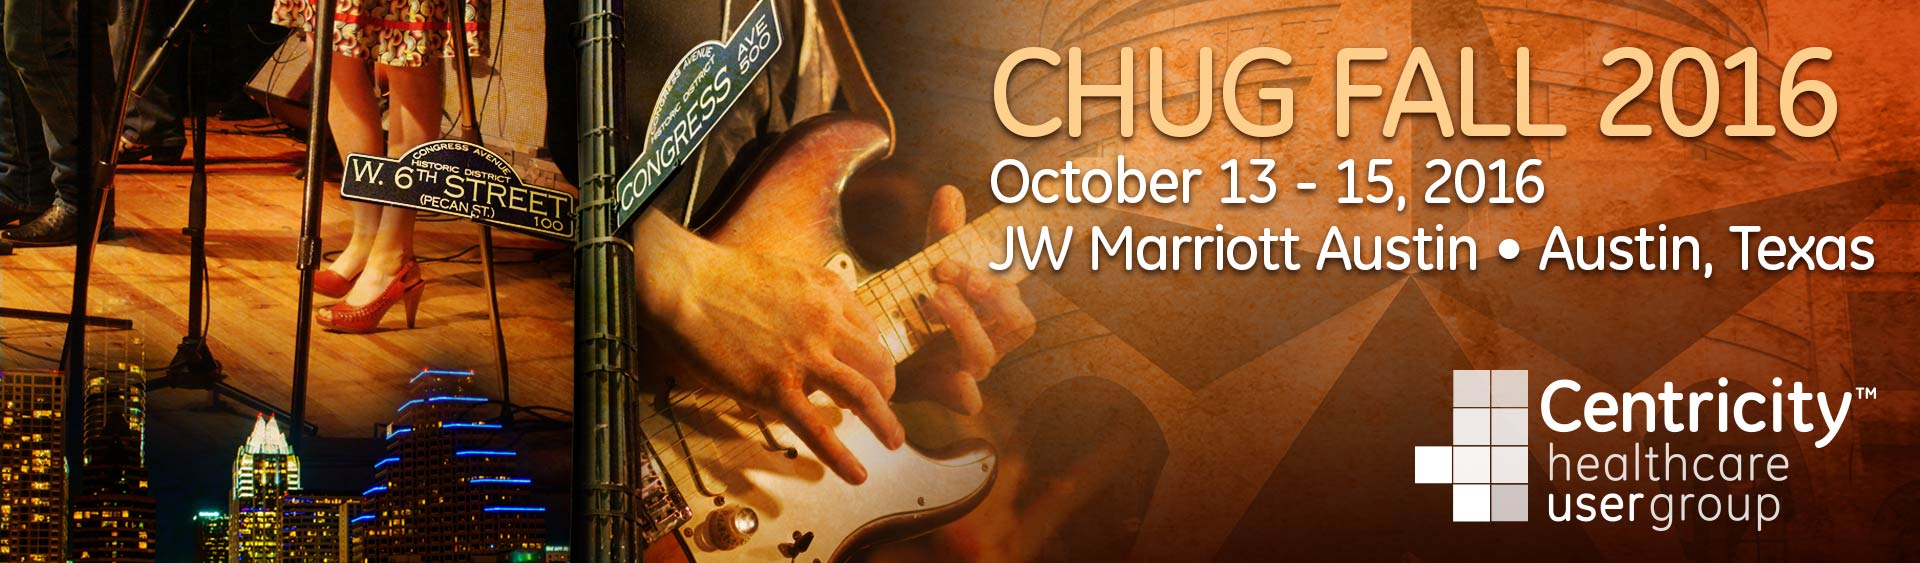 CHUG_Fall_2016_Austin_Registration_Banner